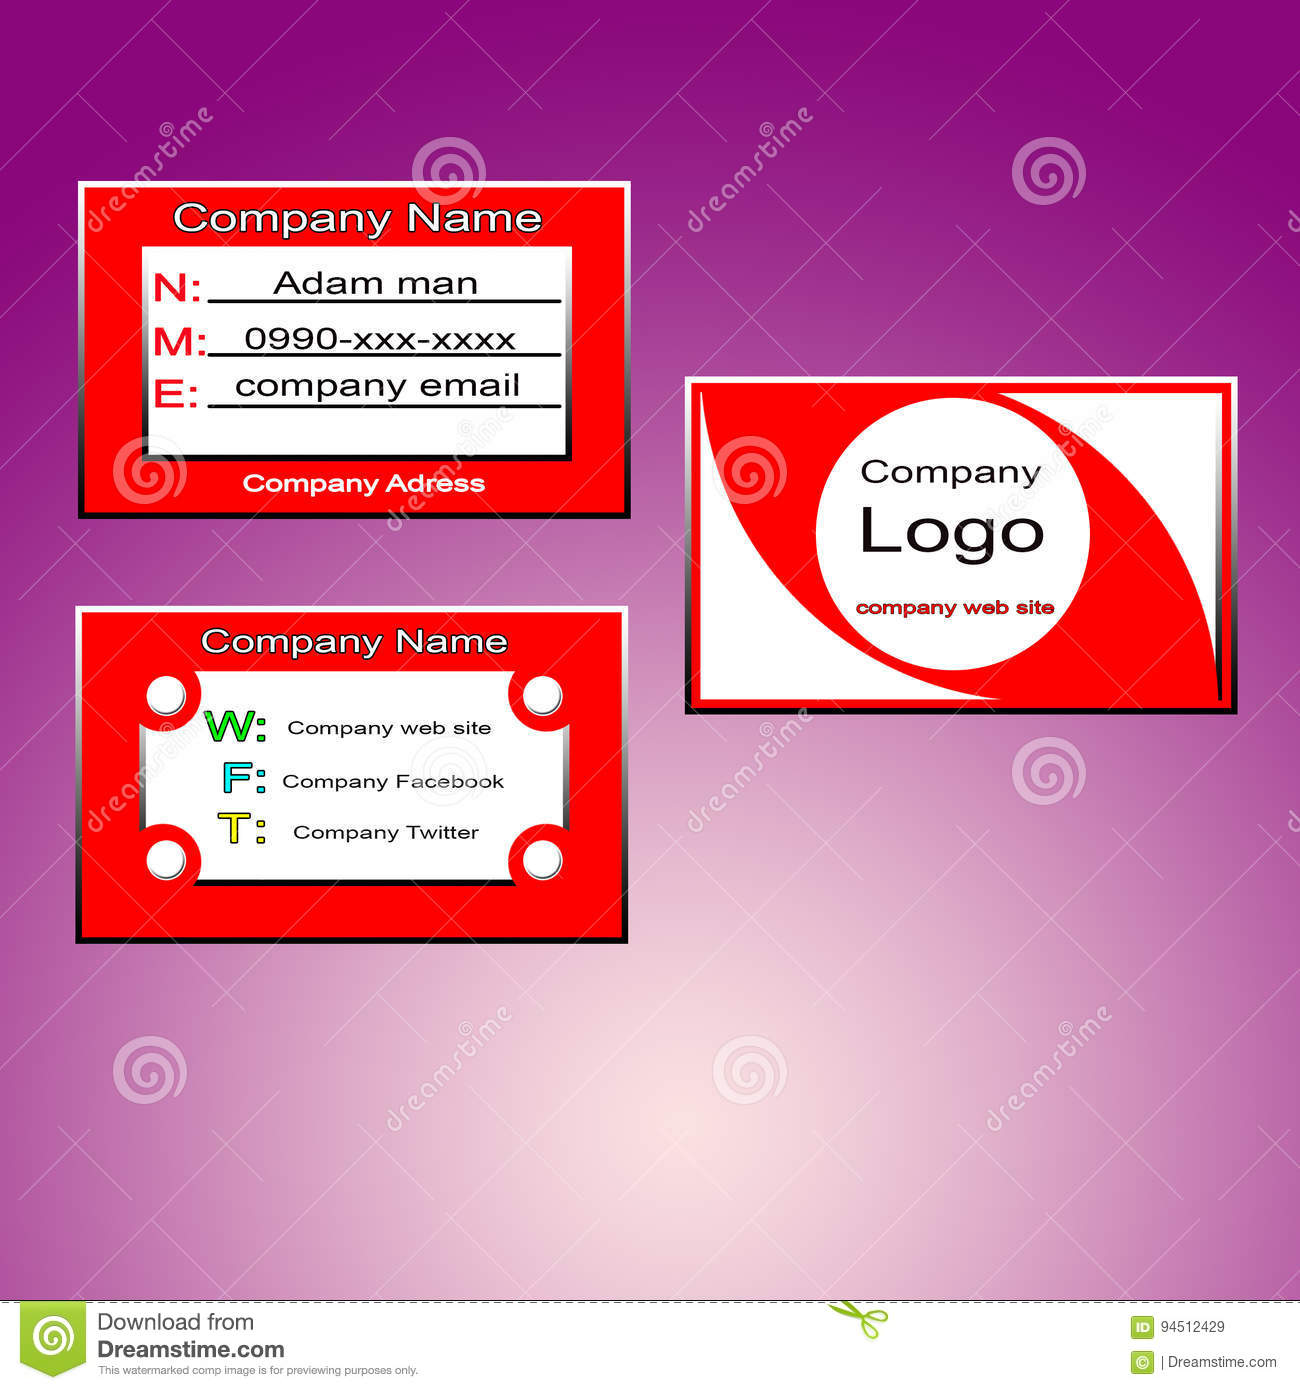 Business card red stock vector illustration of card 94512429 a red business card with three faces one for logo website another for name mobile number and third face for social networking sites colourmoves